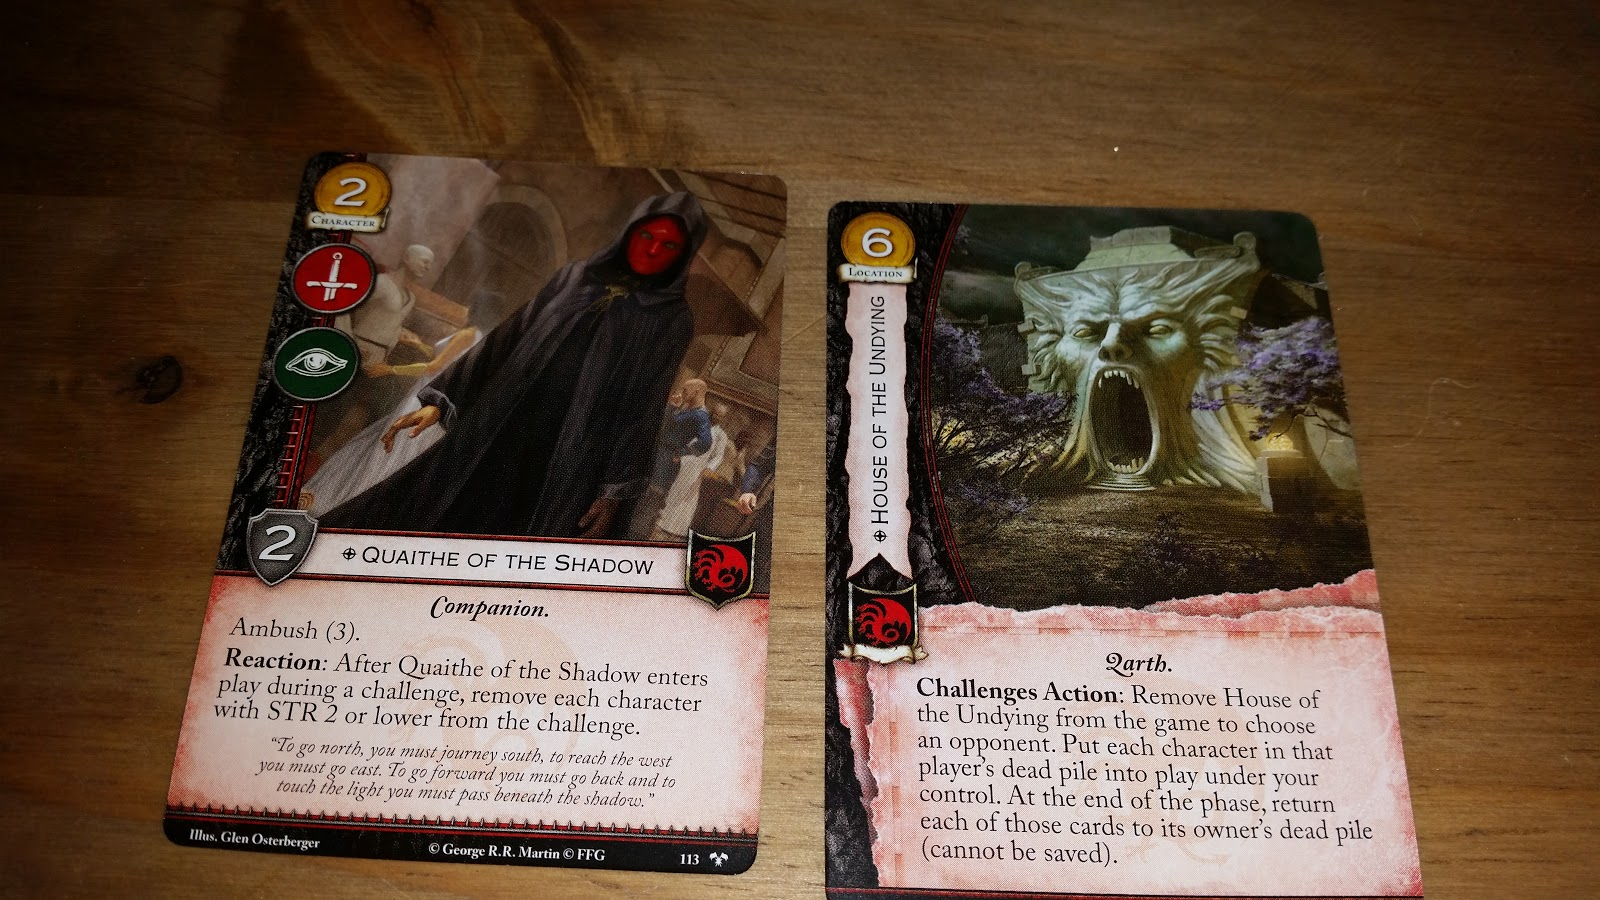 The Garage Gamers: Tyrions Chains chapter pack for a Game ... Quaithe Of The Shadow